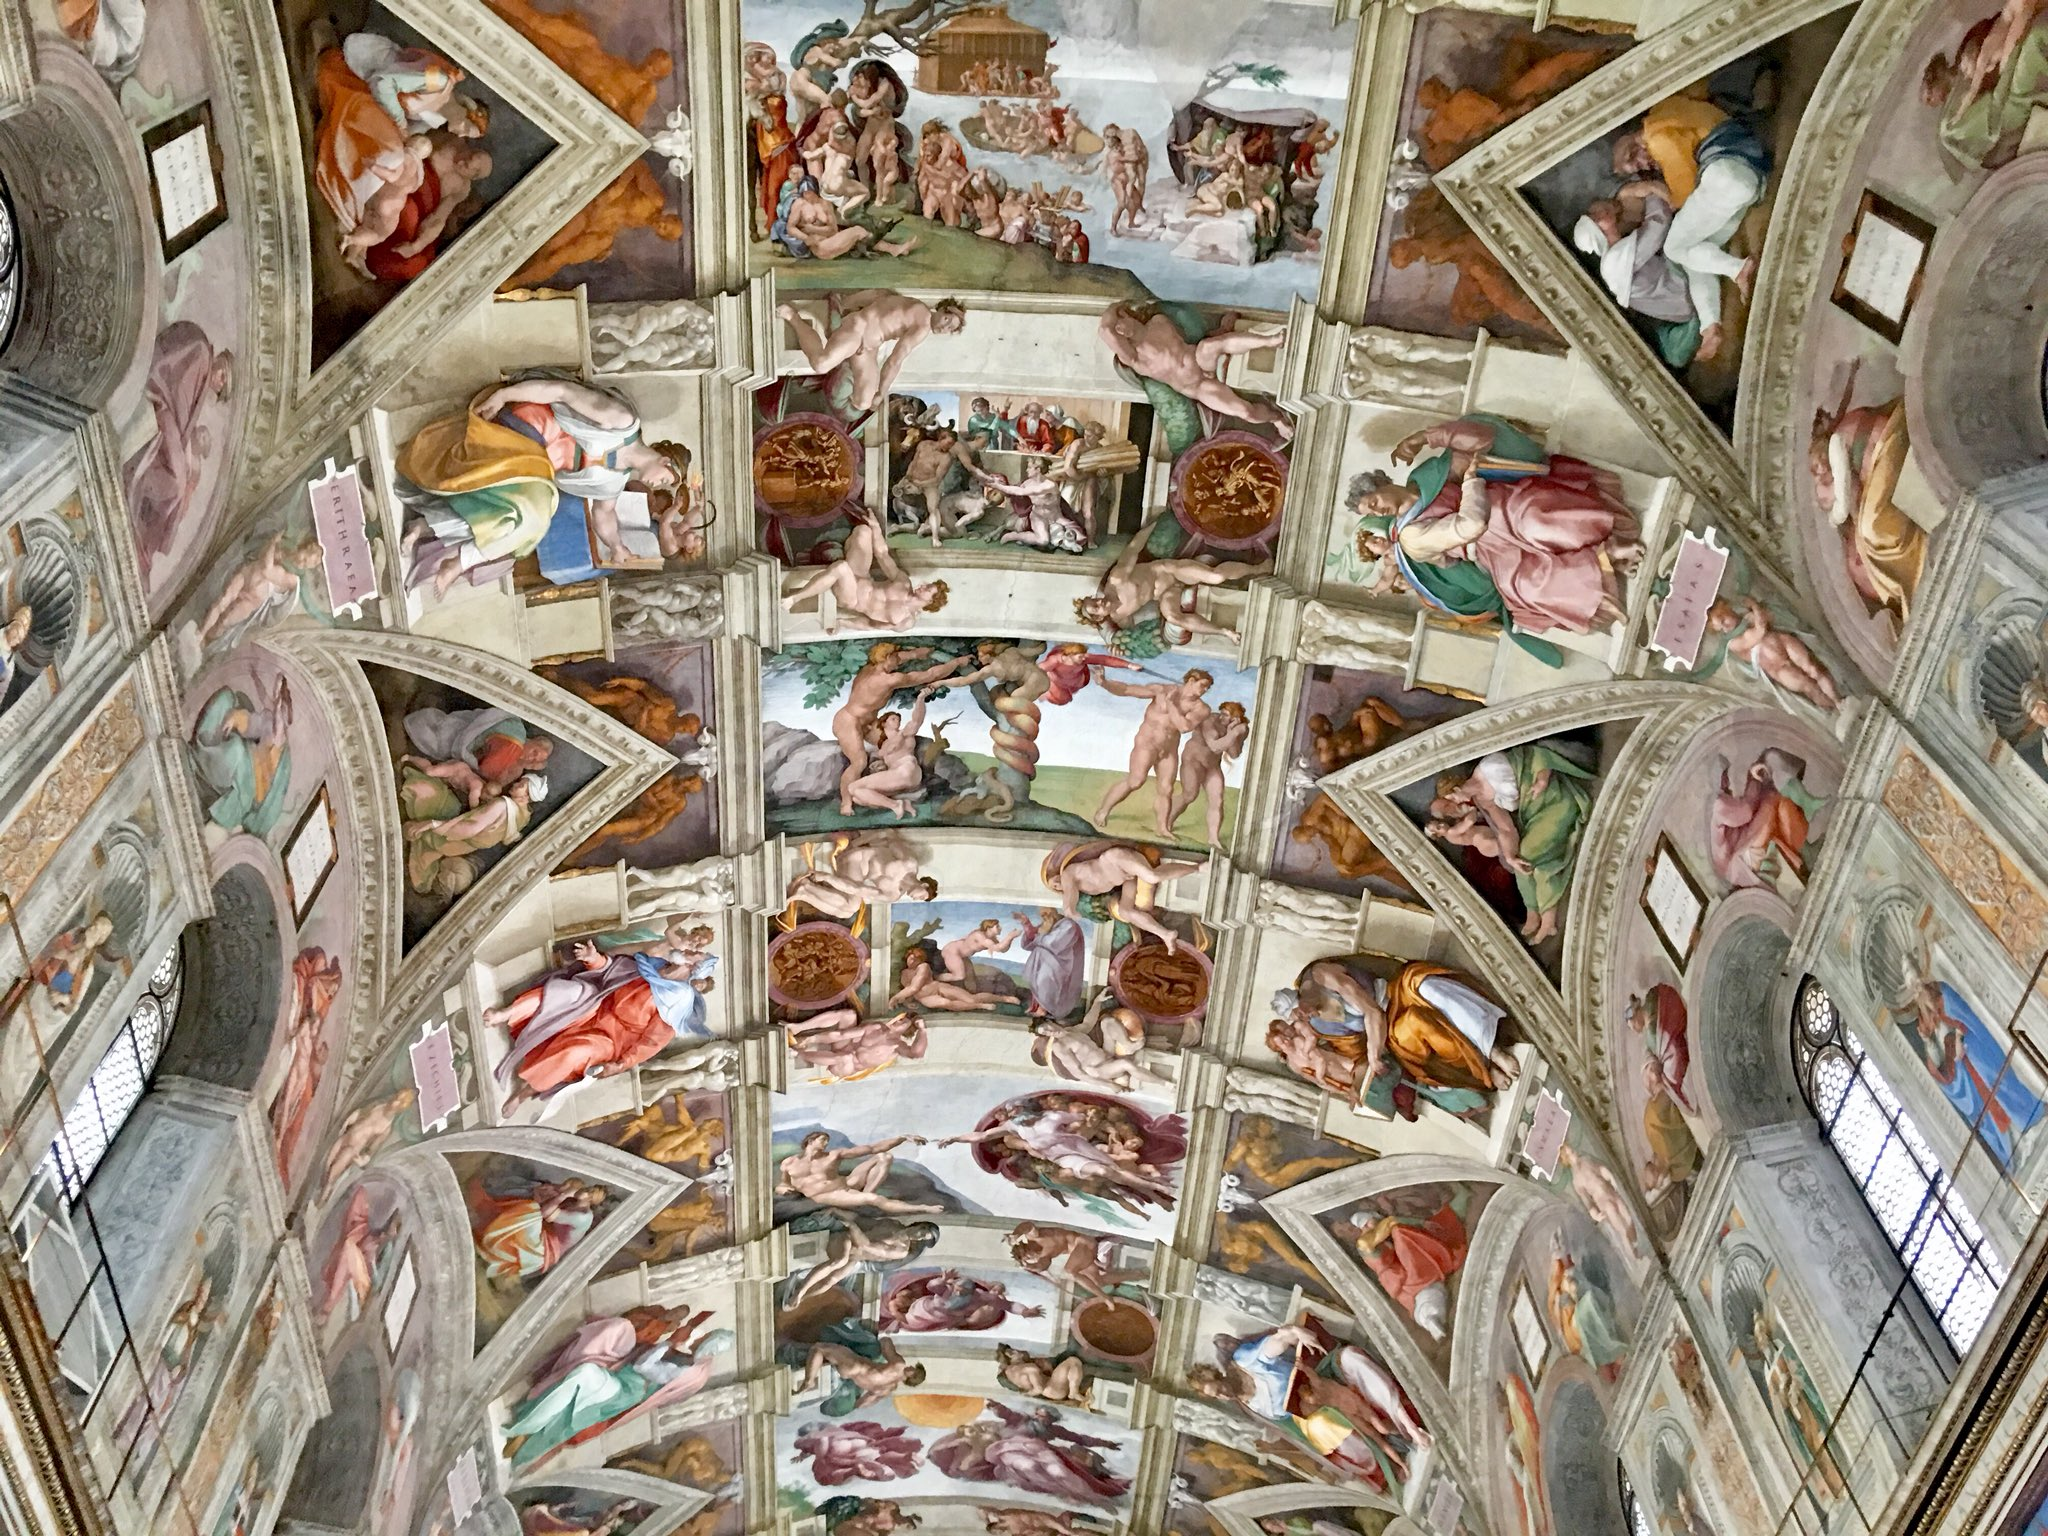 Odyssey Italy 2018, The Sistine Chapel ceiling, painted by Michelangelo between 1508 and 1512 (over 500 years ago), is a cornerstone work of High Renaissance art. https://t.co/p4BNF77Aco